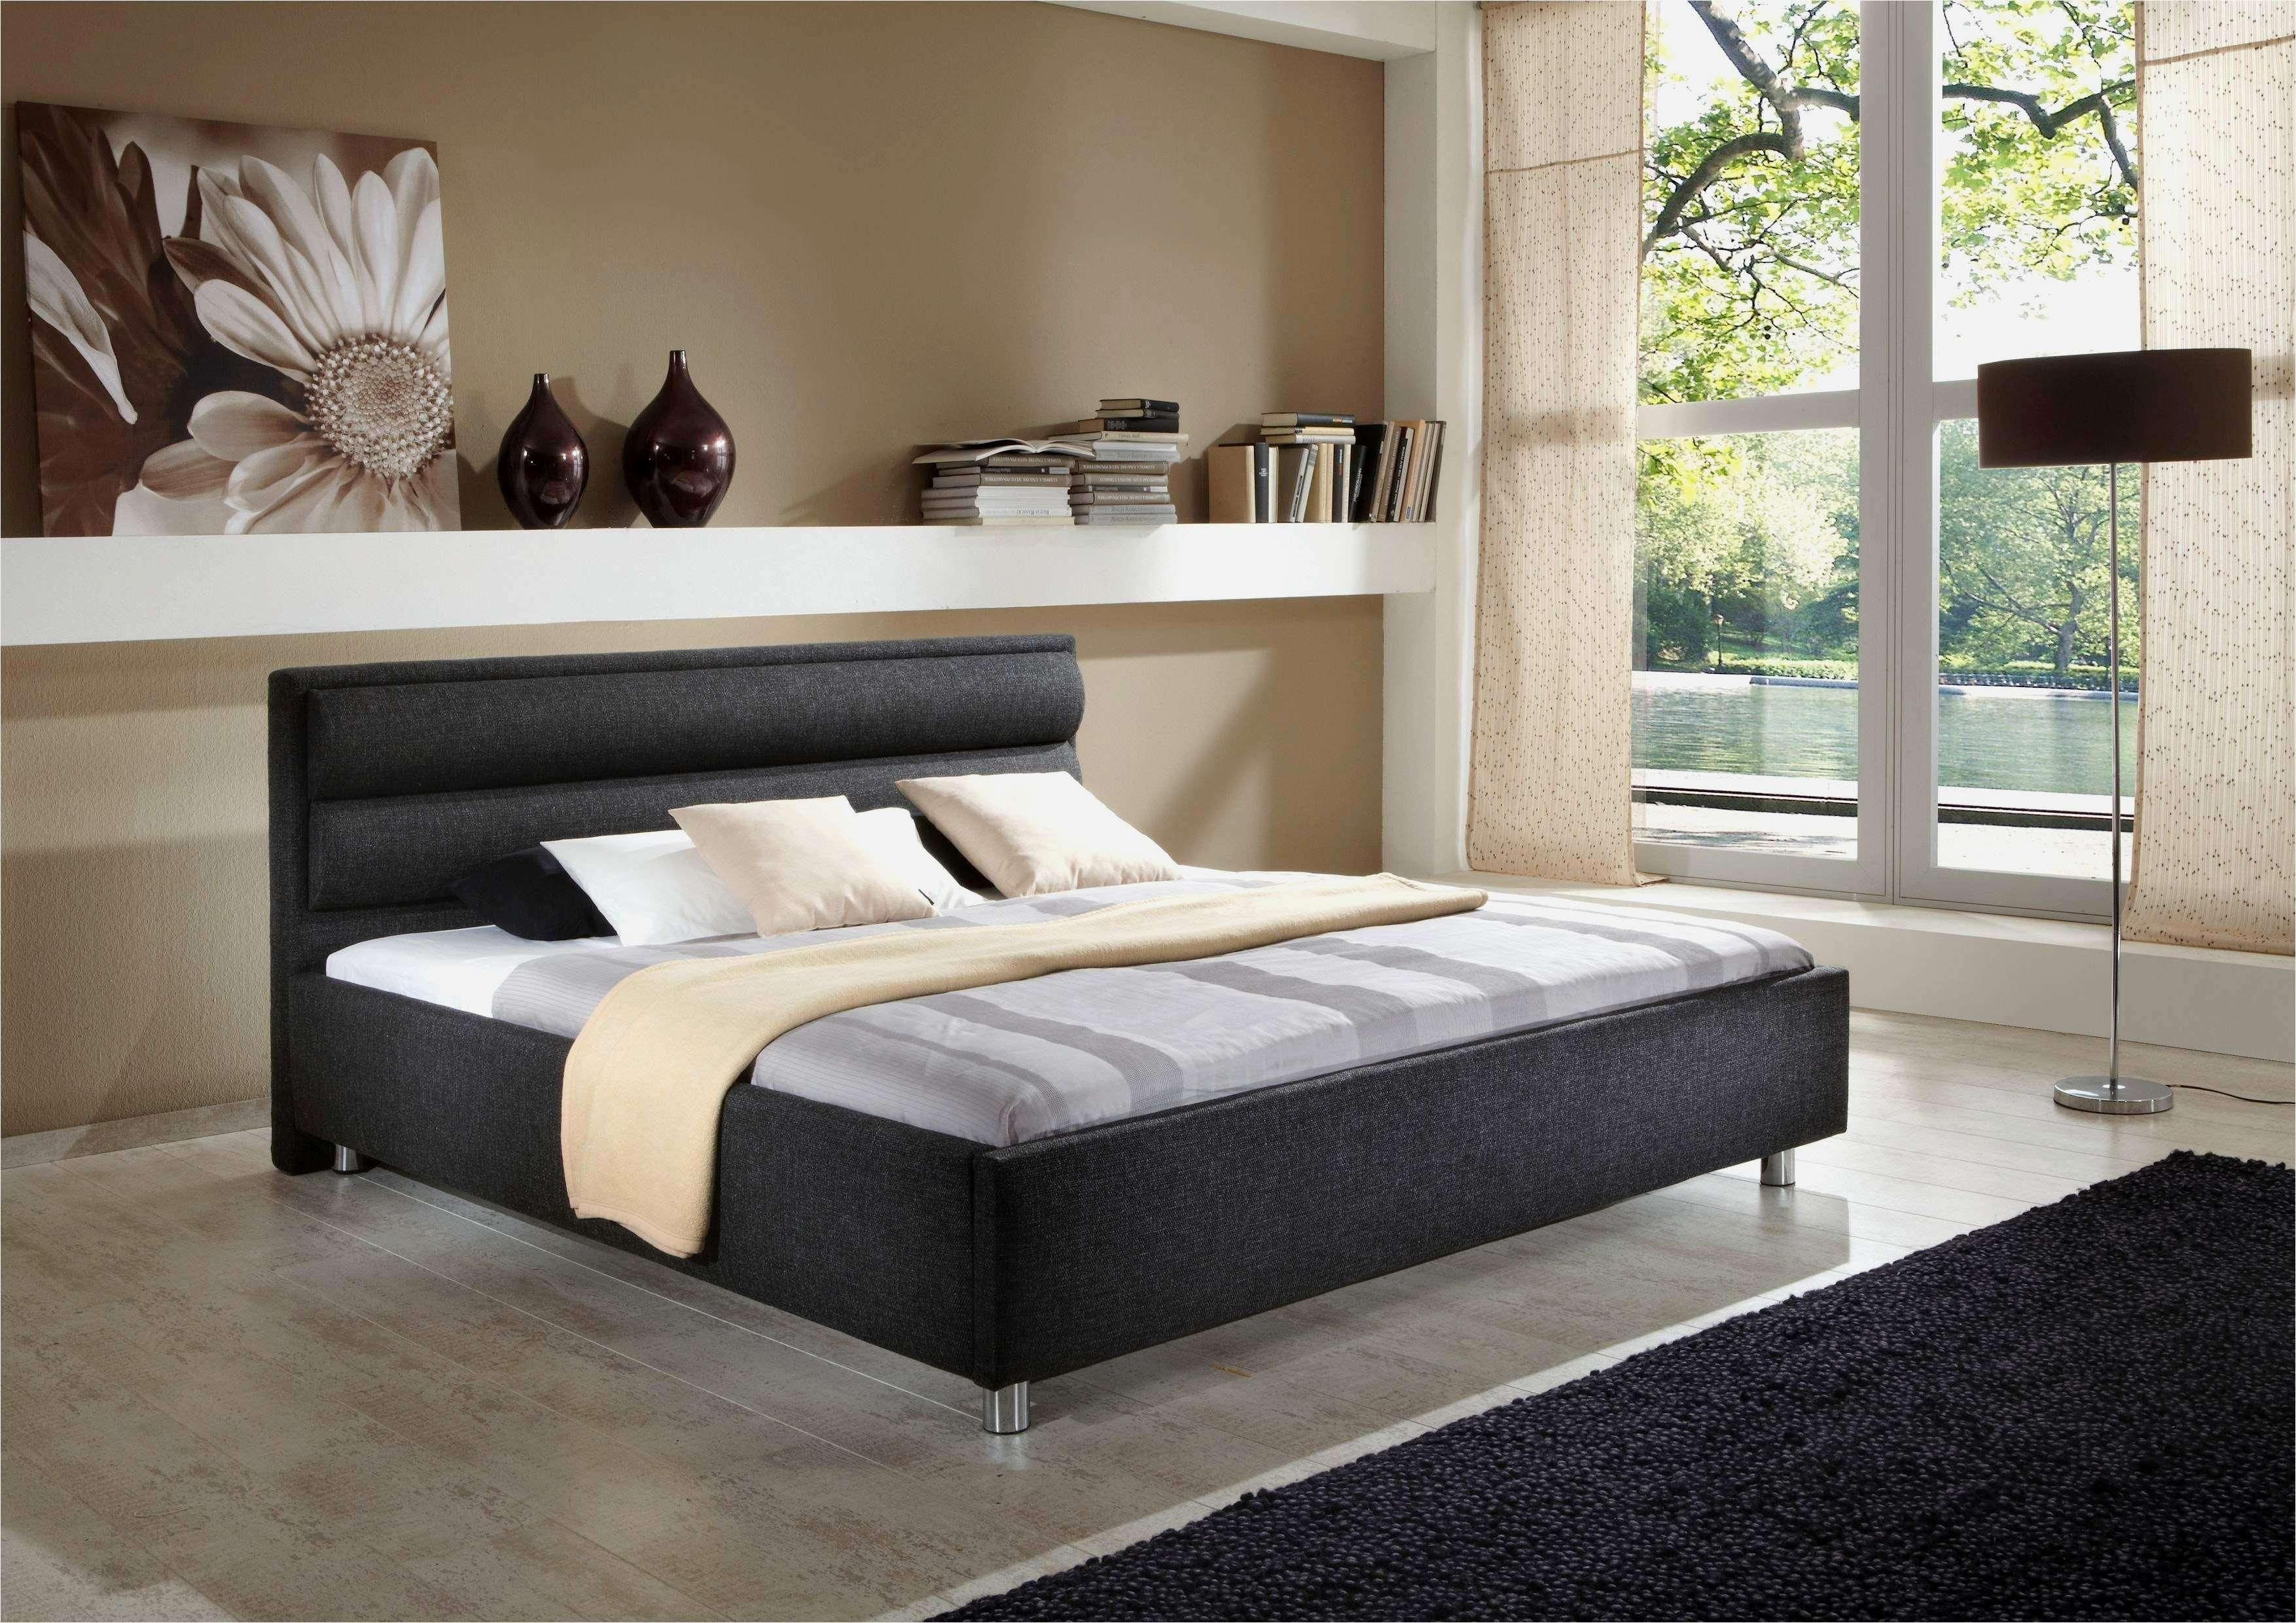 10 Schlafzimmer Ideen Grau Beige Awesome Bedrooms Bedroom Furnishings Bed